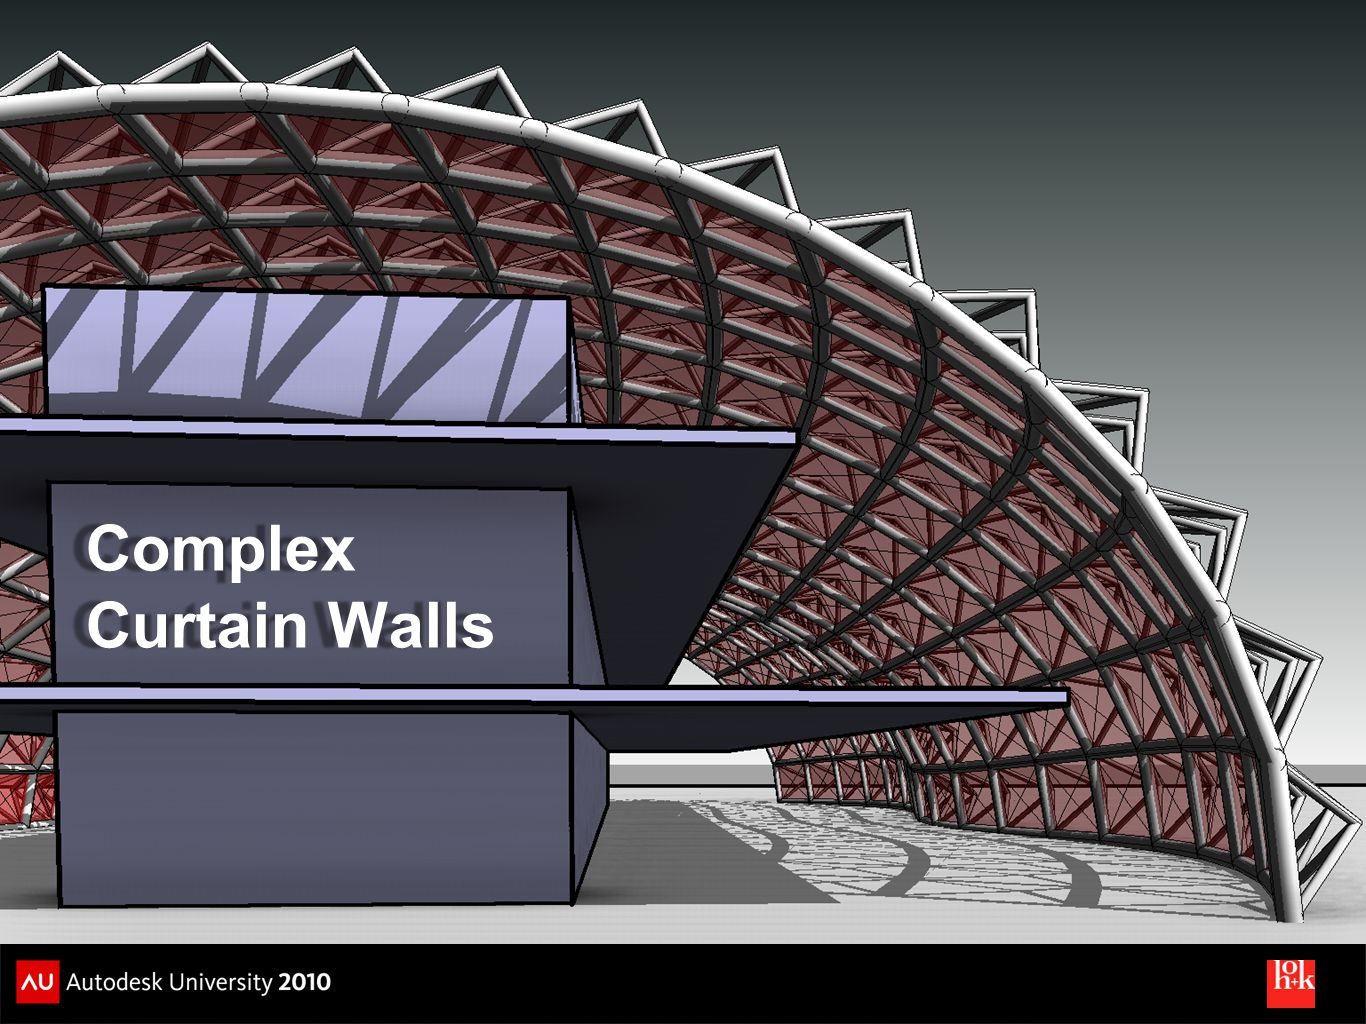 Complex Curtain Walls